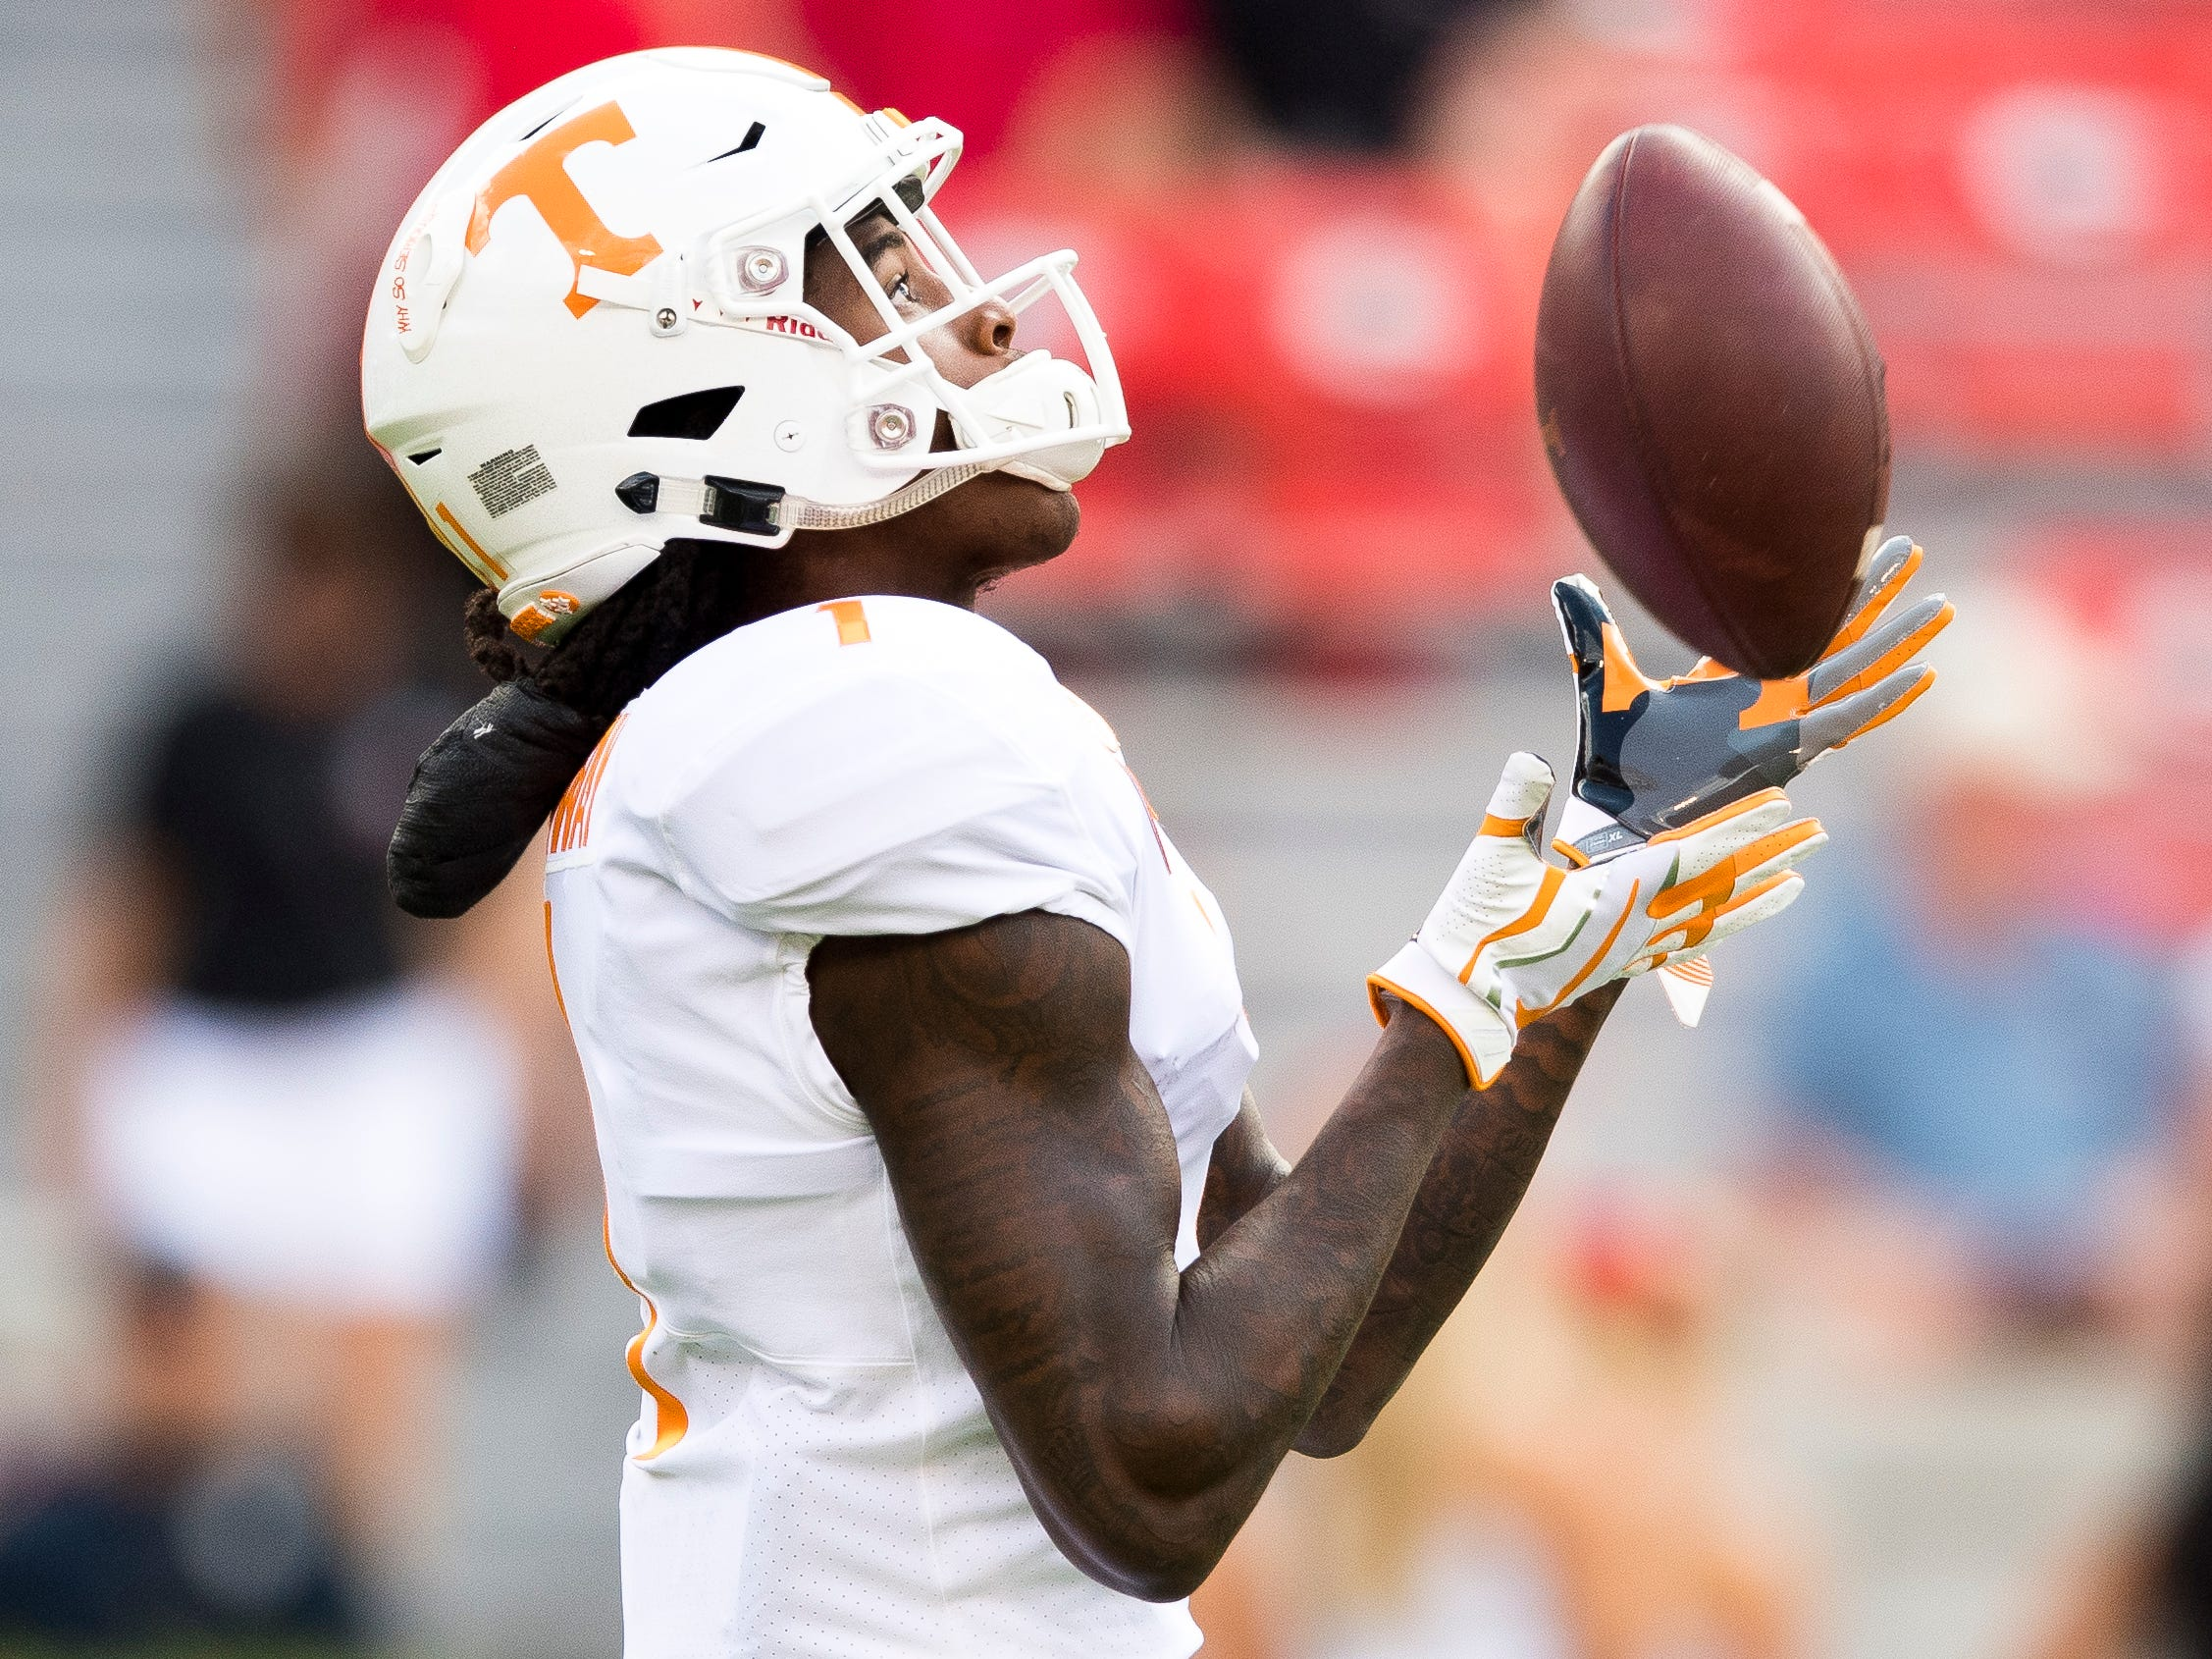 Tennessee wide receiver Marquez Callaway (1) makes a catch during warmups before the Tennessee Volunteers' game against Georgia in Sanford Stadium in Athens, Ga., on Saturday, Sept. 29, 2018.